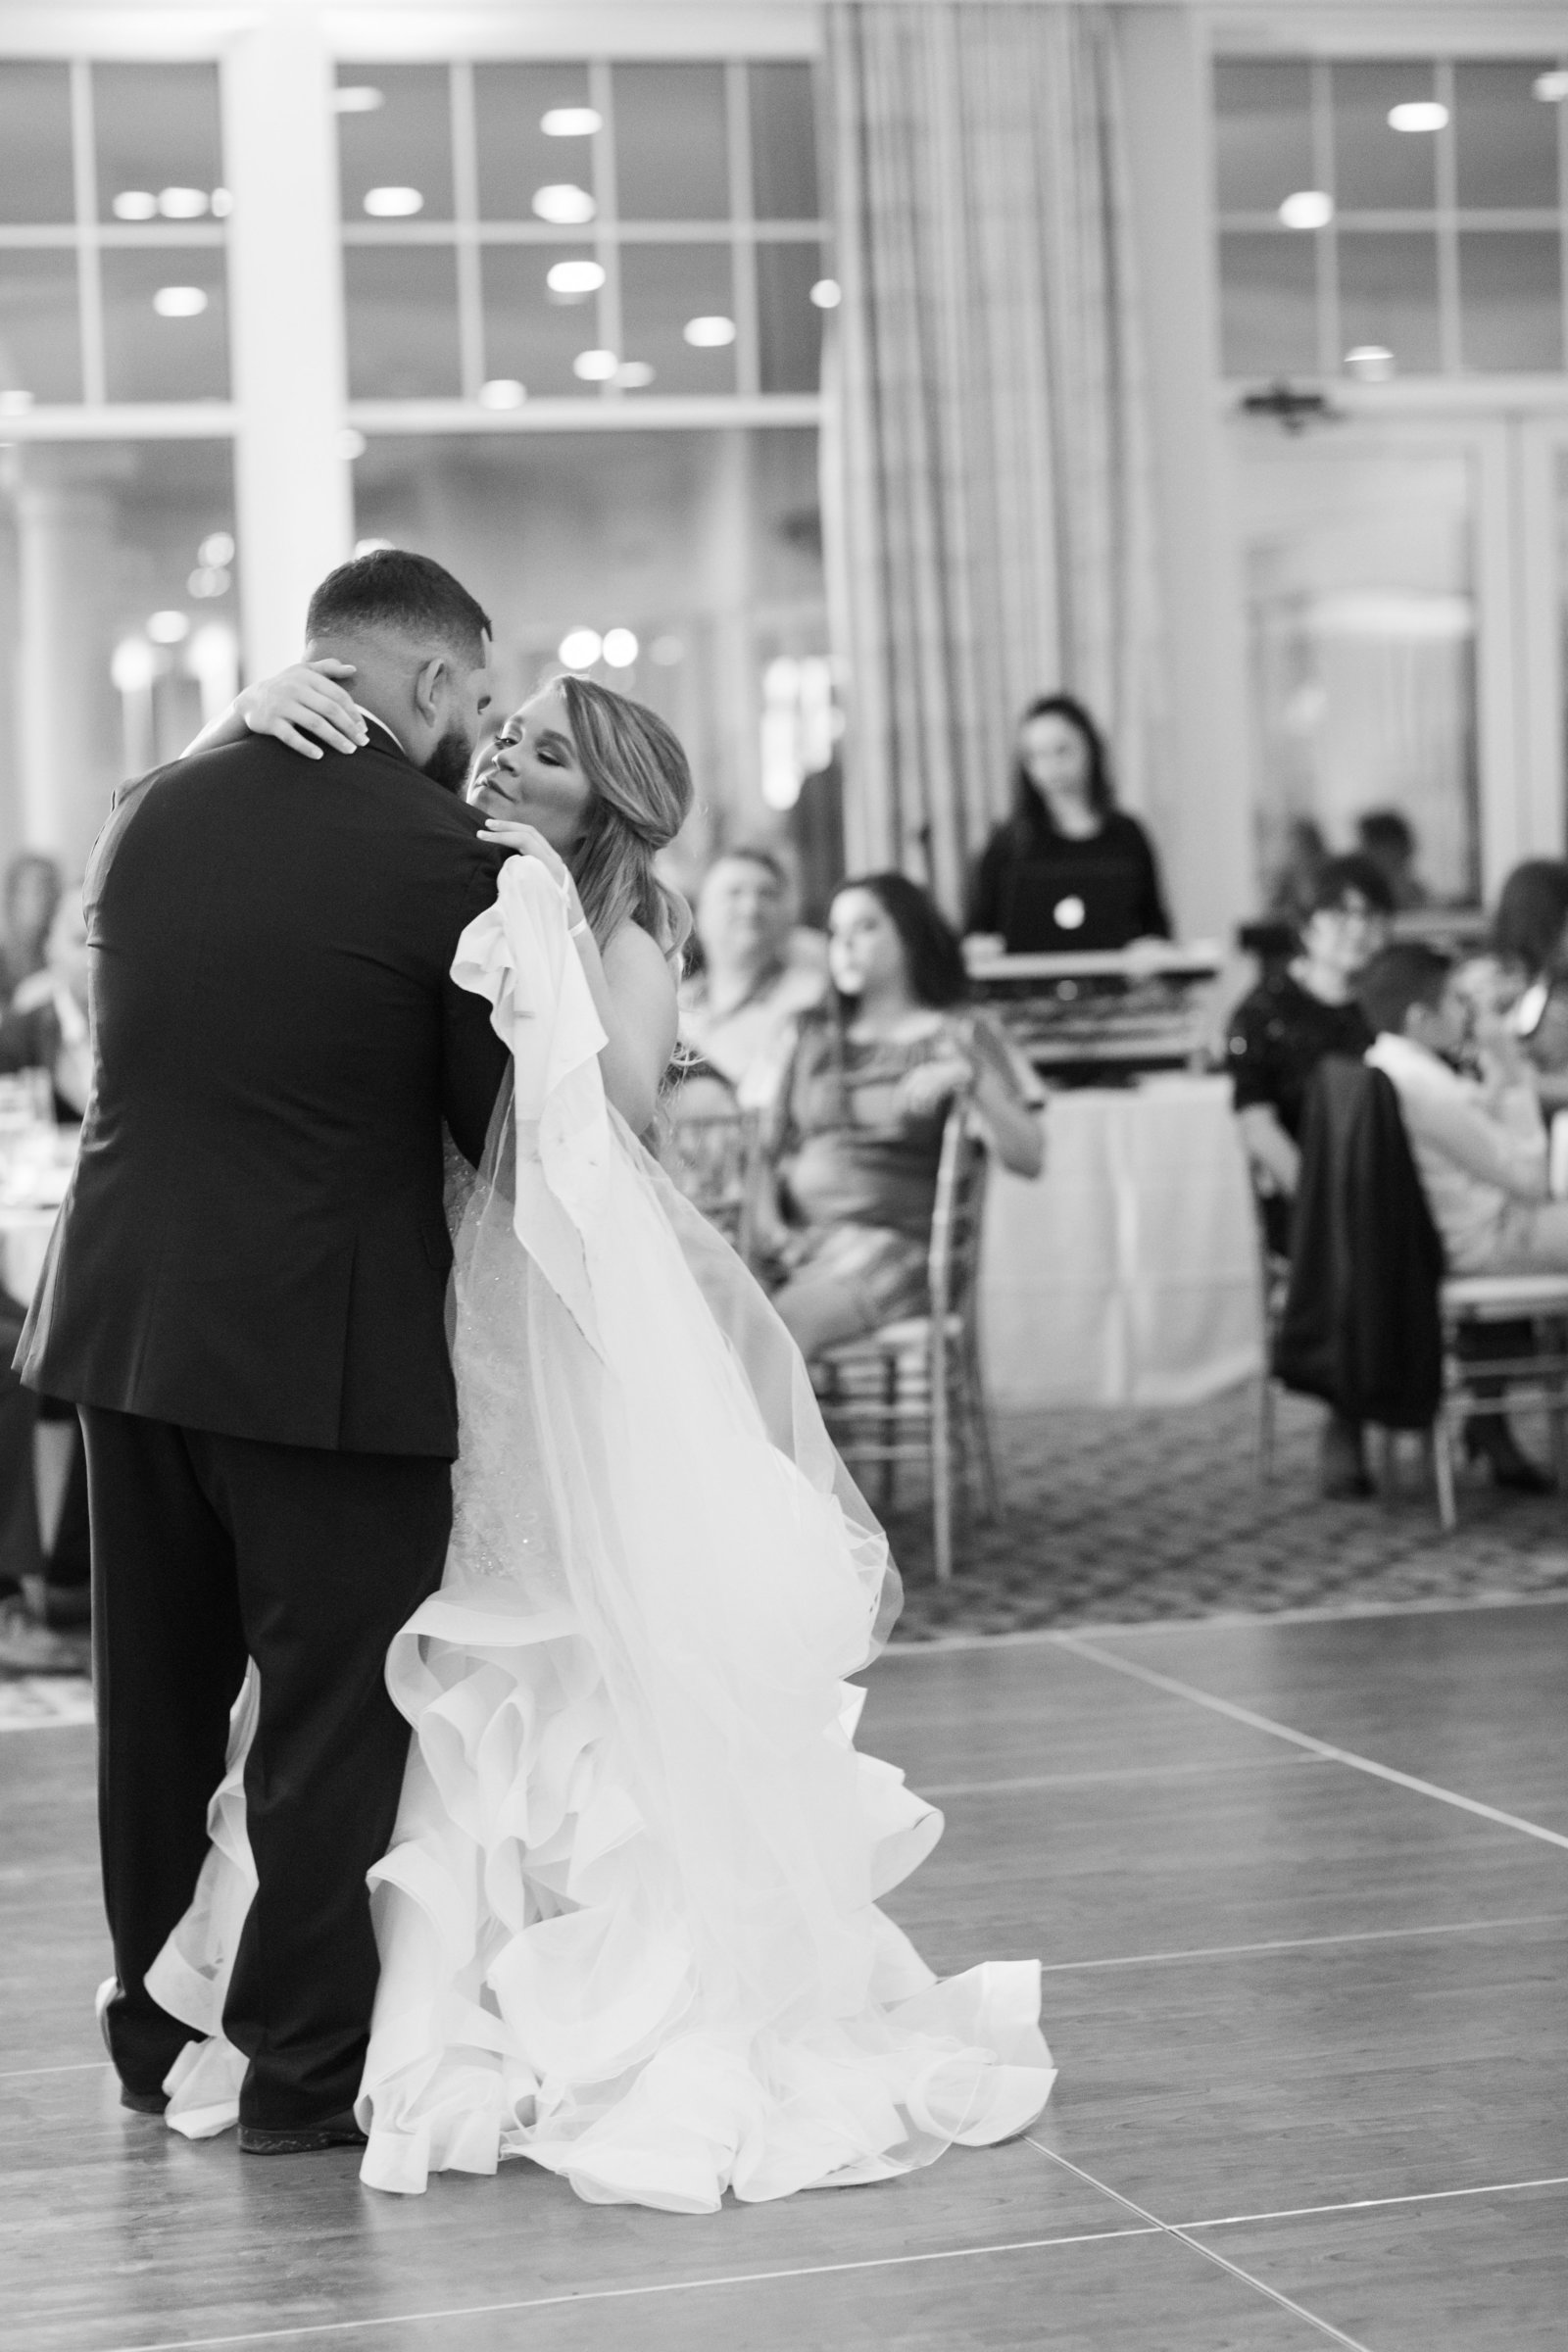 Jennifer_B_Photography-Pinehurst_Club-Pinehurst_NC-Wedding_Day-Caleb___Miranda-JB_Favs-2019-0249